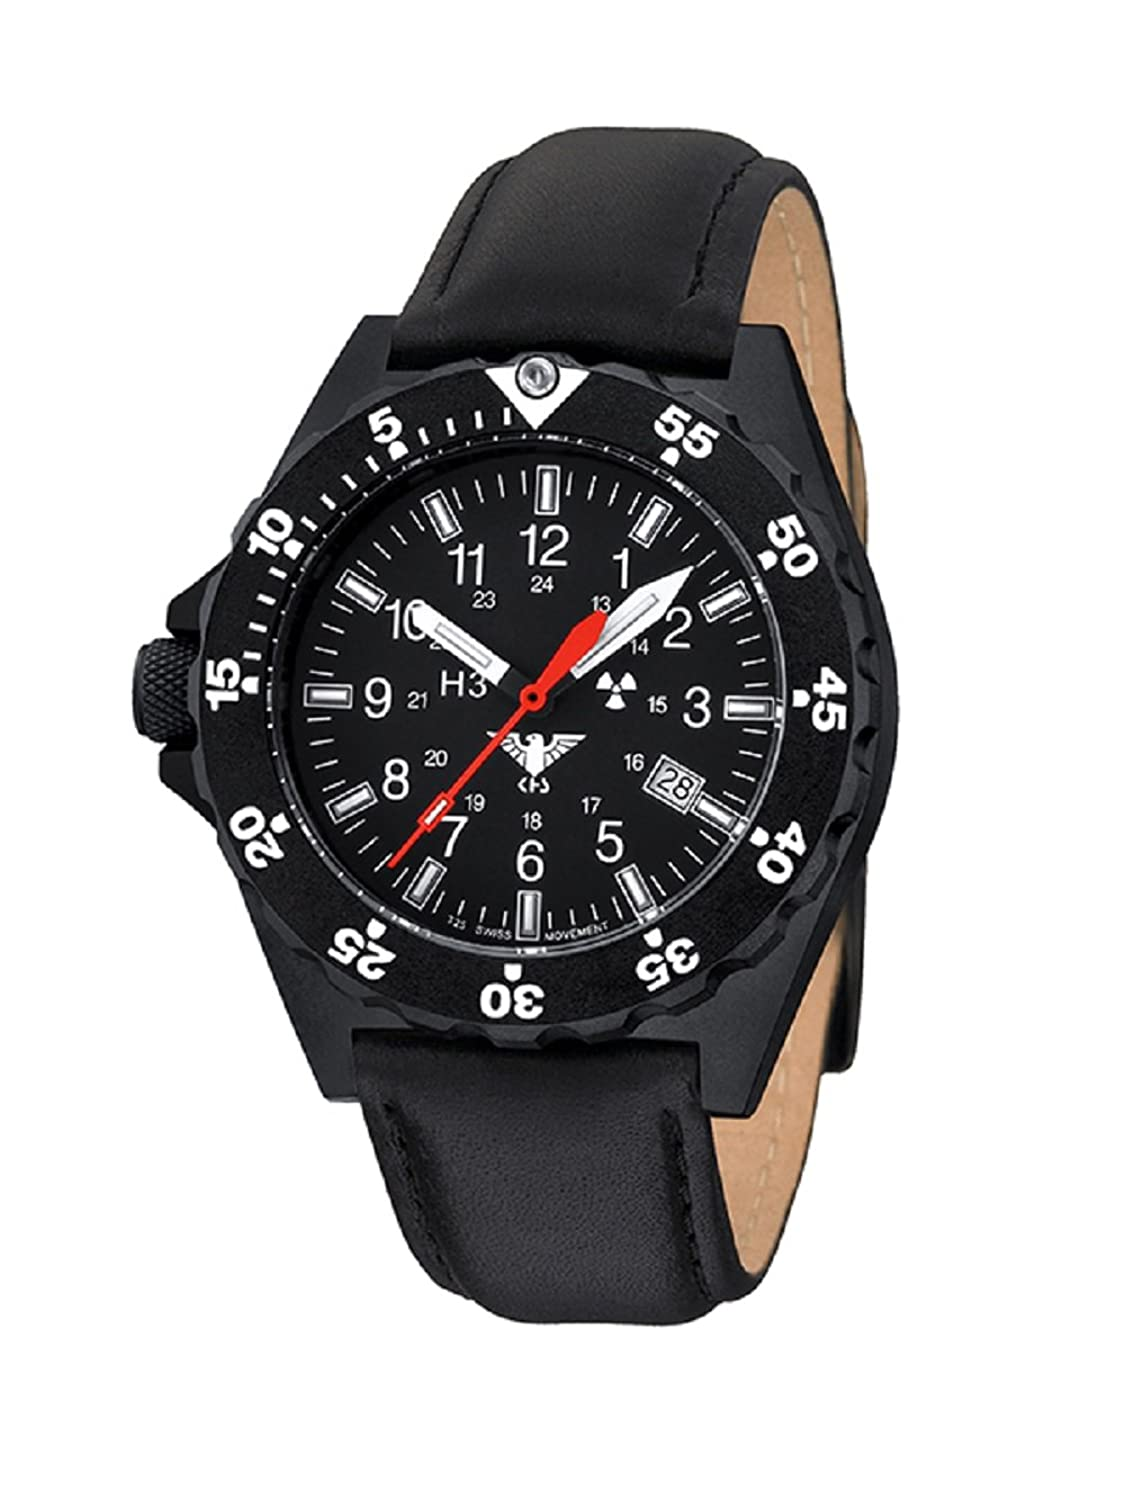 KHS Shooter KHS.SH.L Lederband inkl. Watch-Glass-Protection Schutzfolie